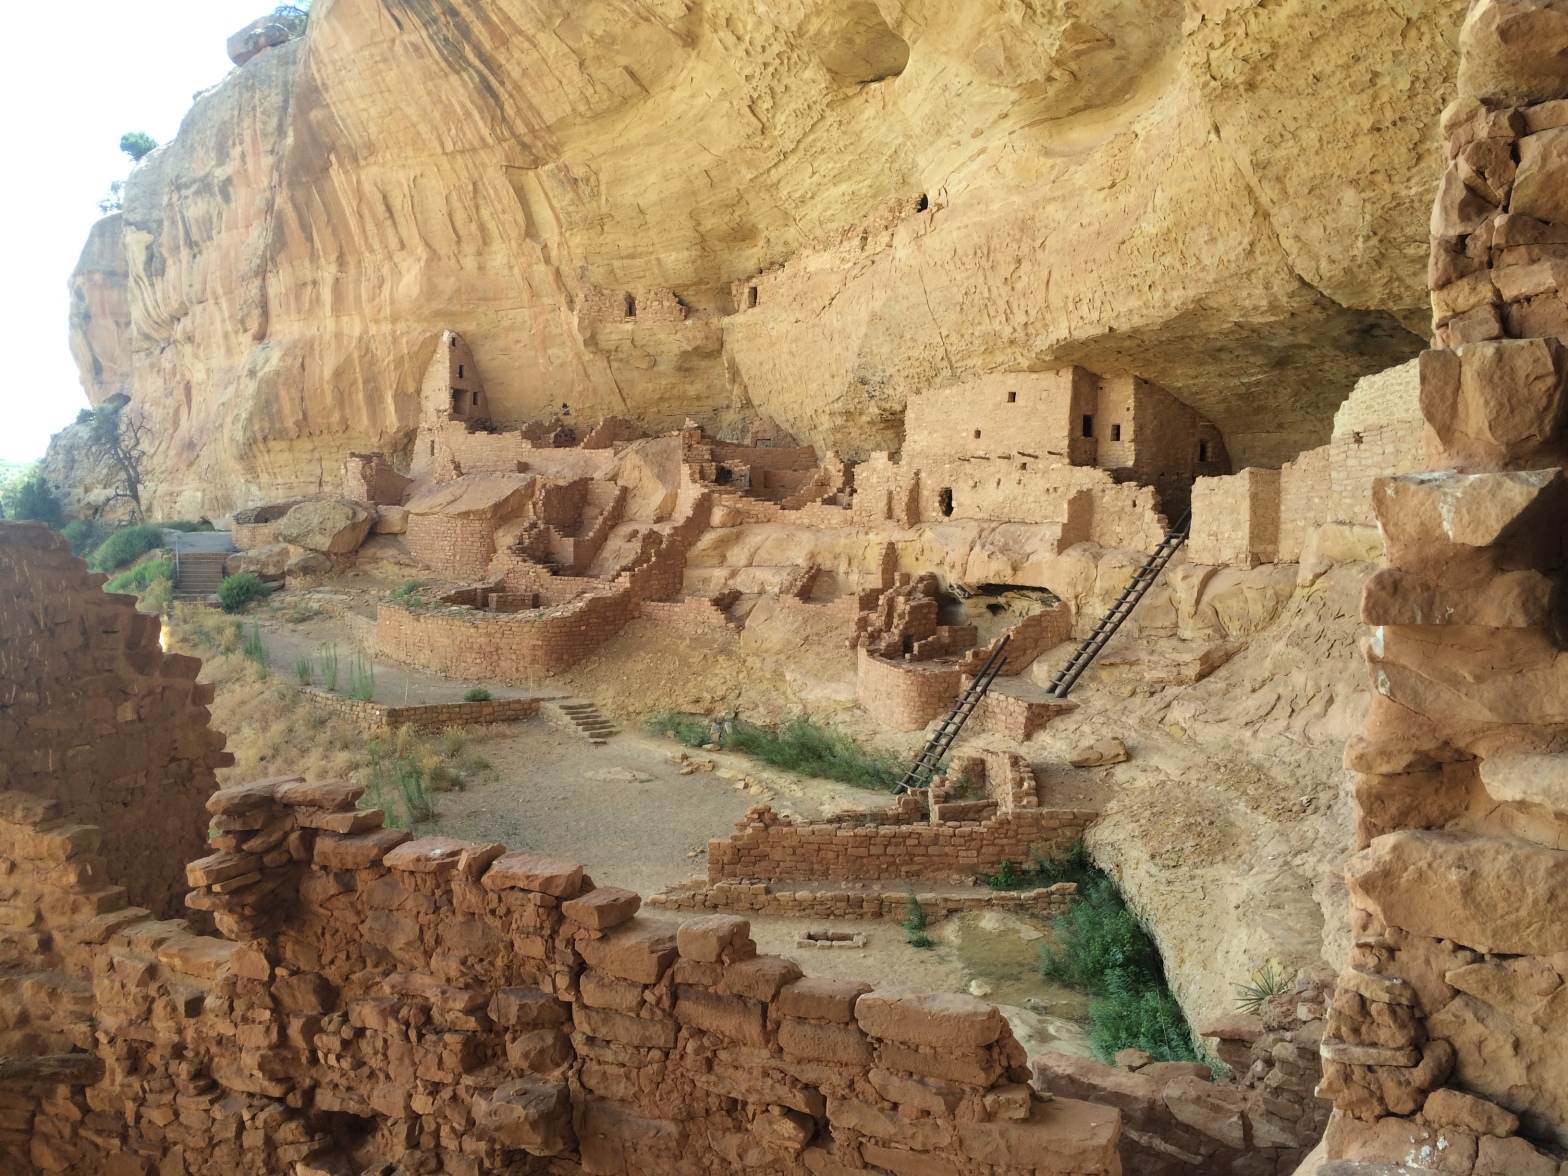 Ruins of Native American cliff dwelling under a rock alcove in Mesa Verde National Park